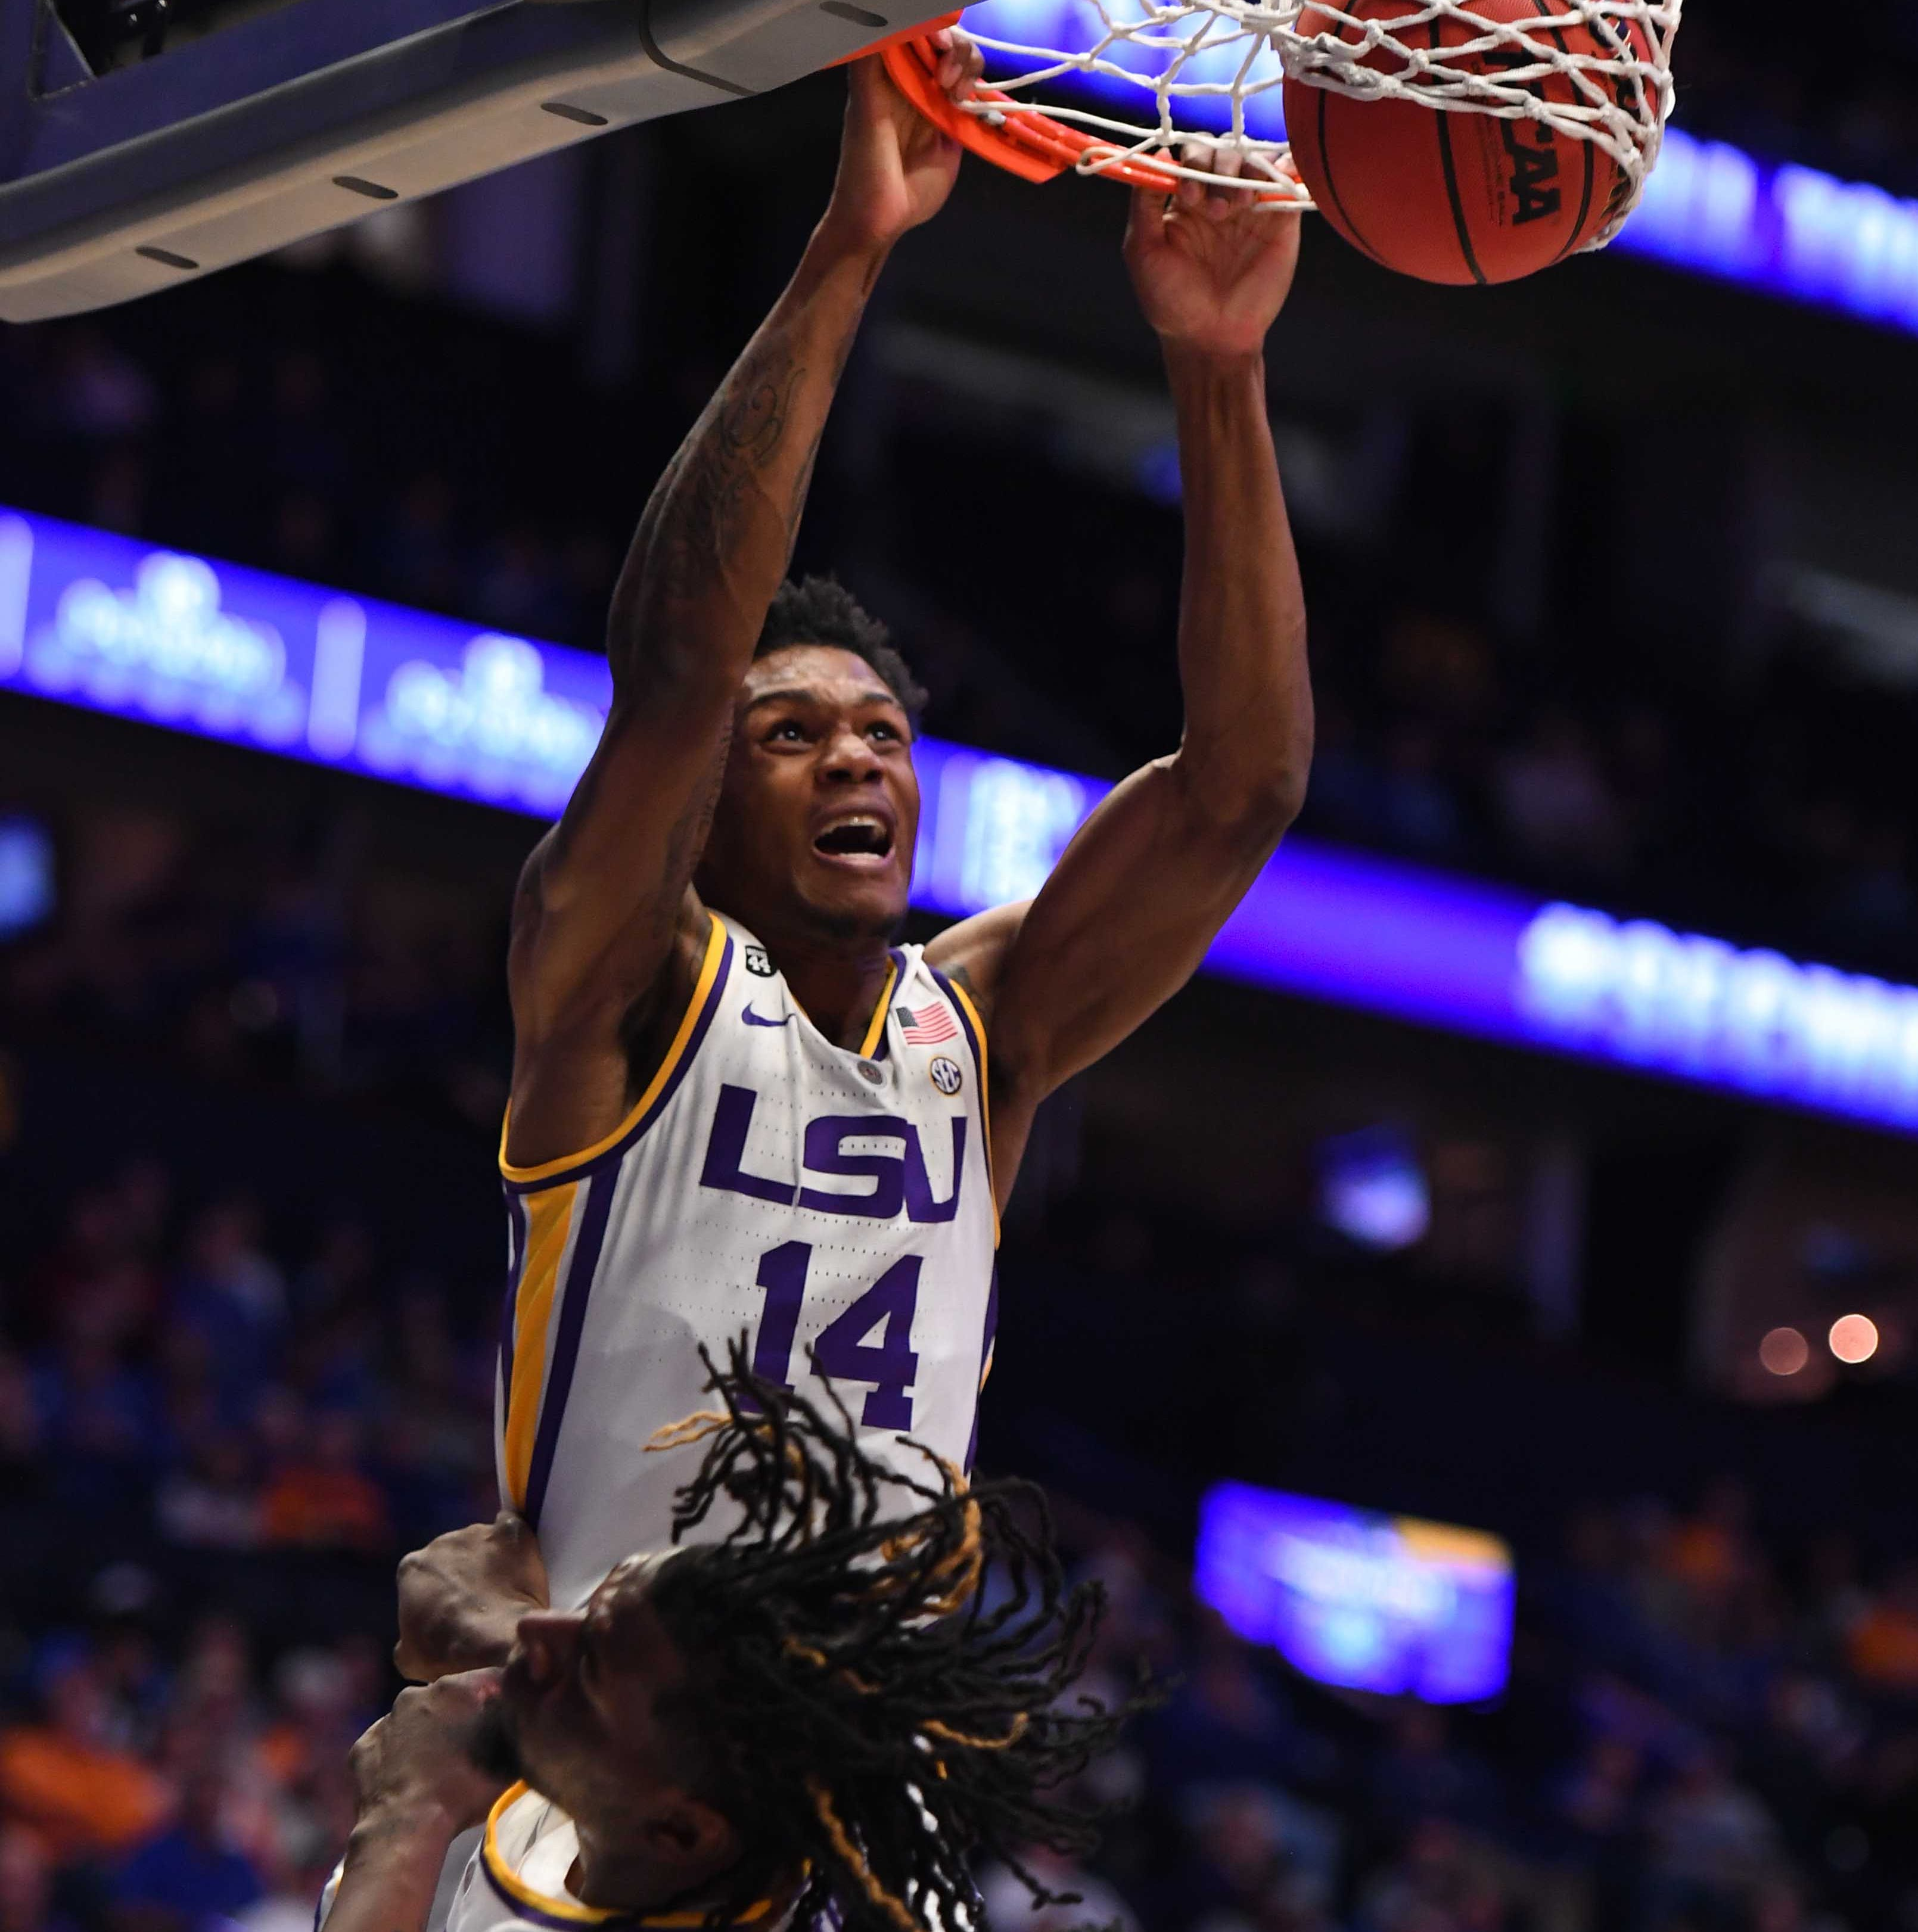 NCAA Tournament 2019: How to watch LSU vs. Yale basketball on TV, stream online